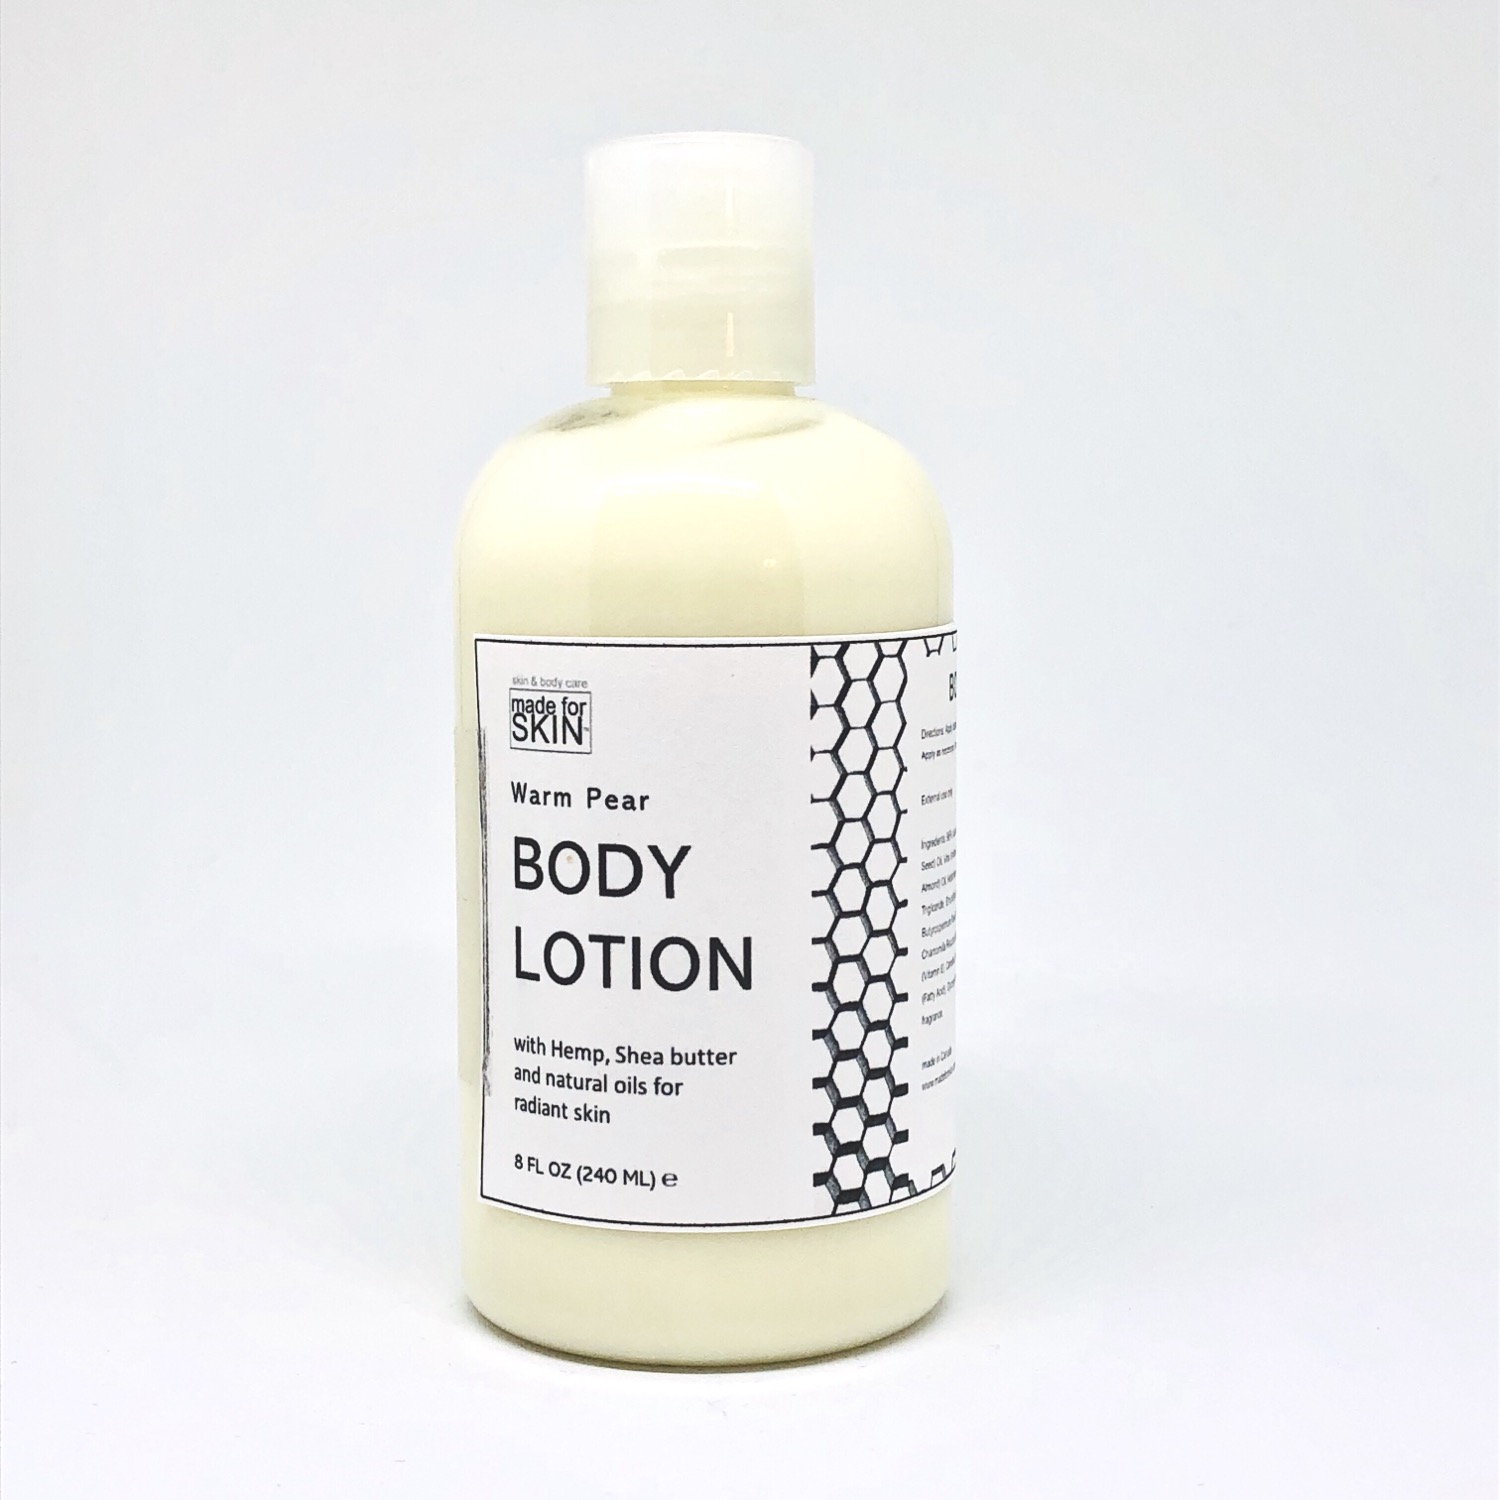 Hemp Warm Pear Body Lotion | made for SKIN